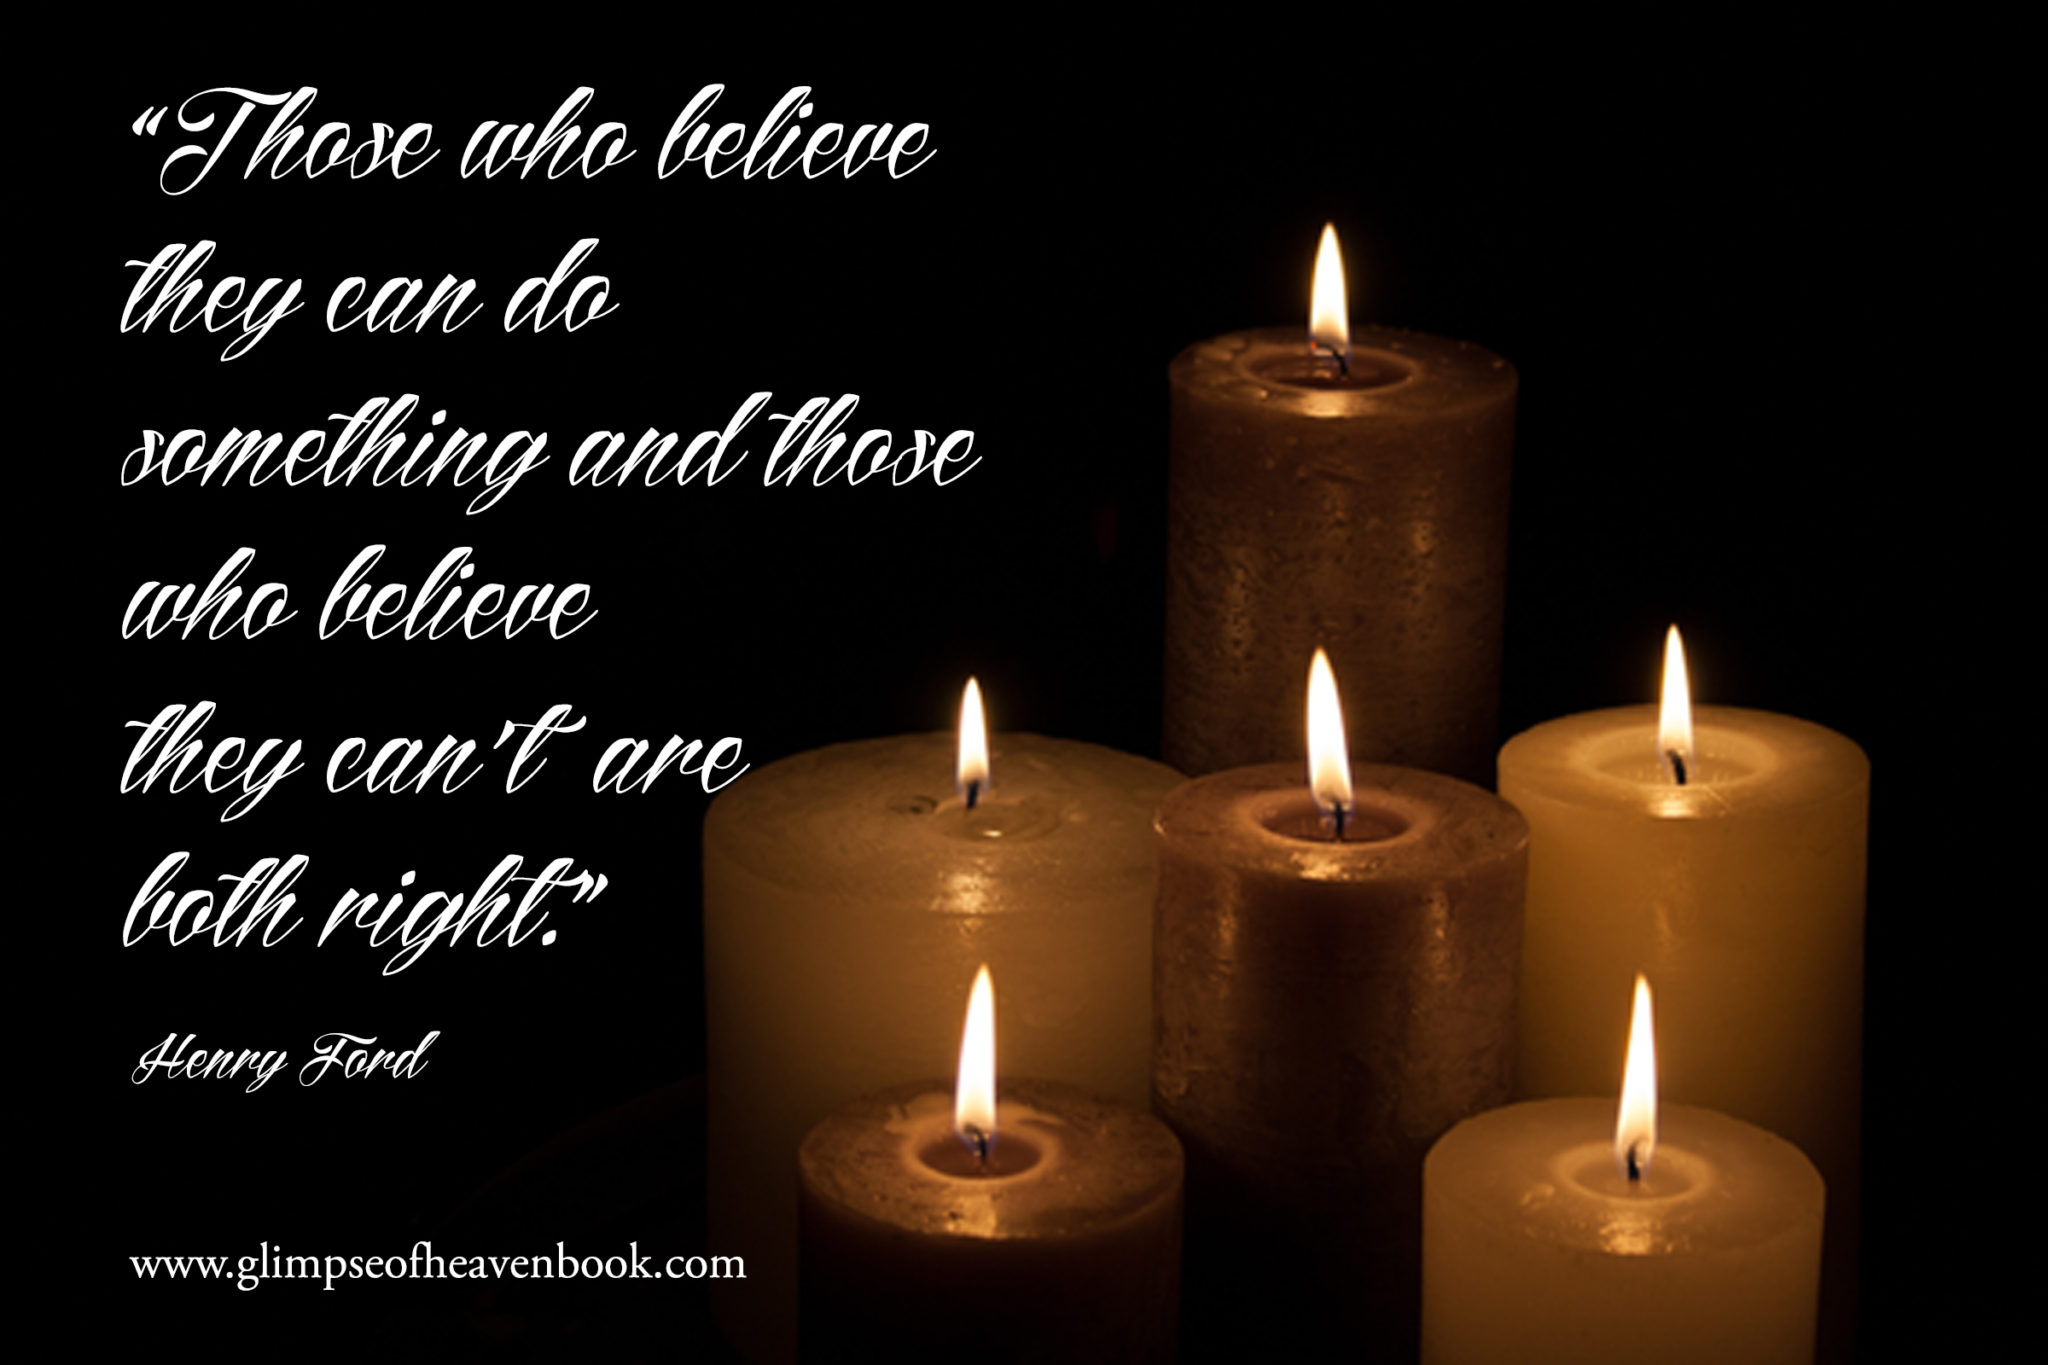 Those who believe  candles-224565